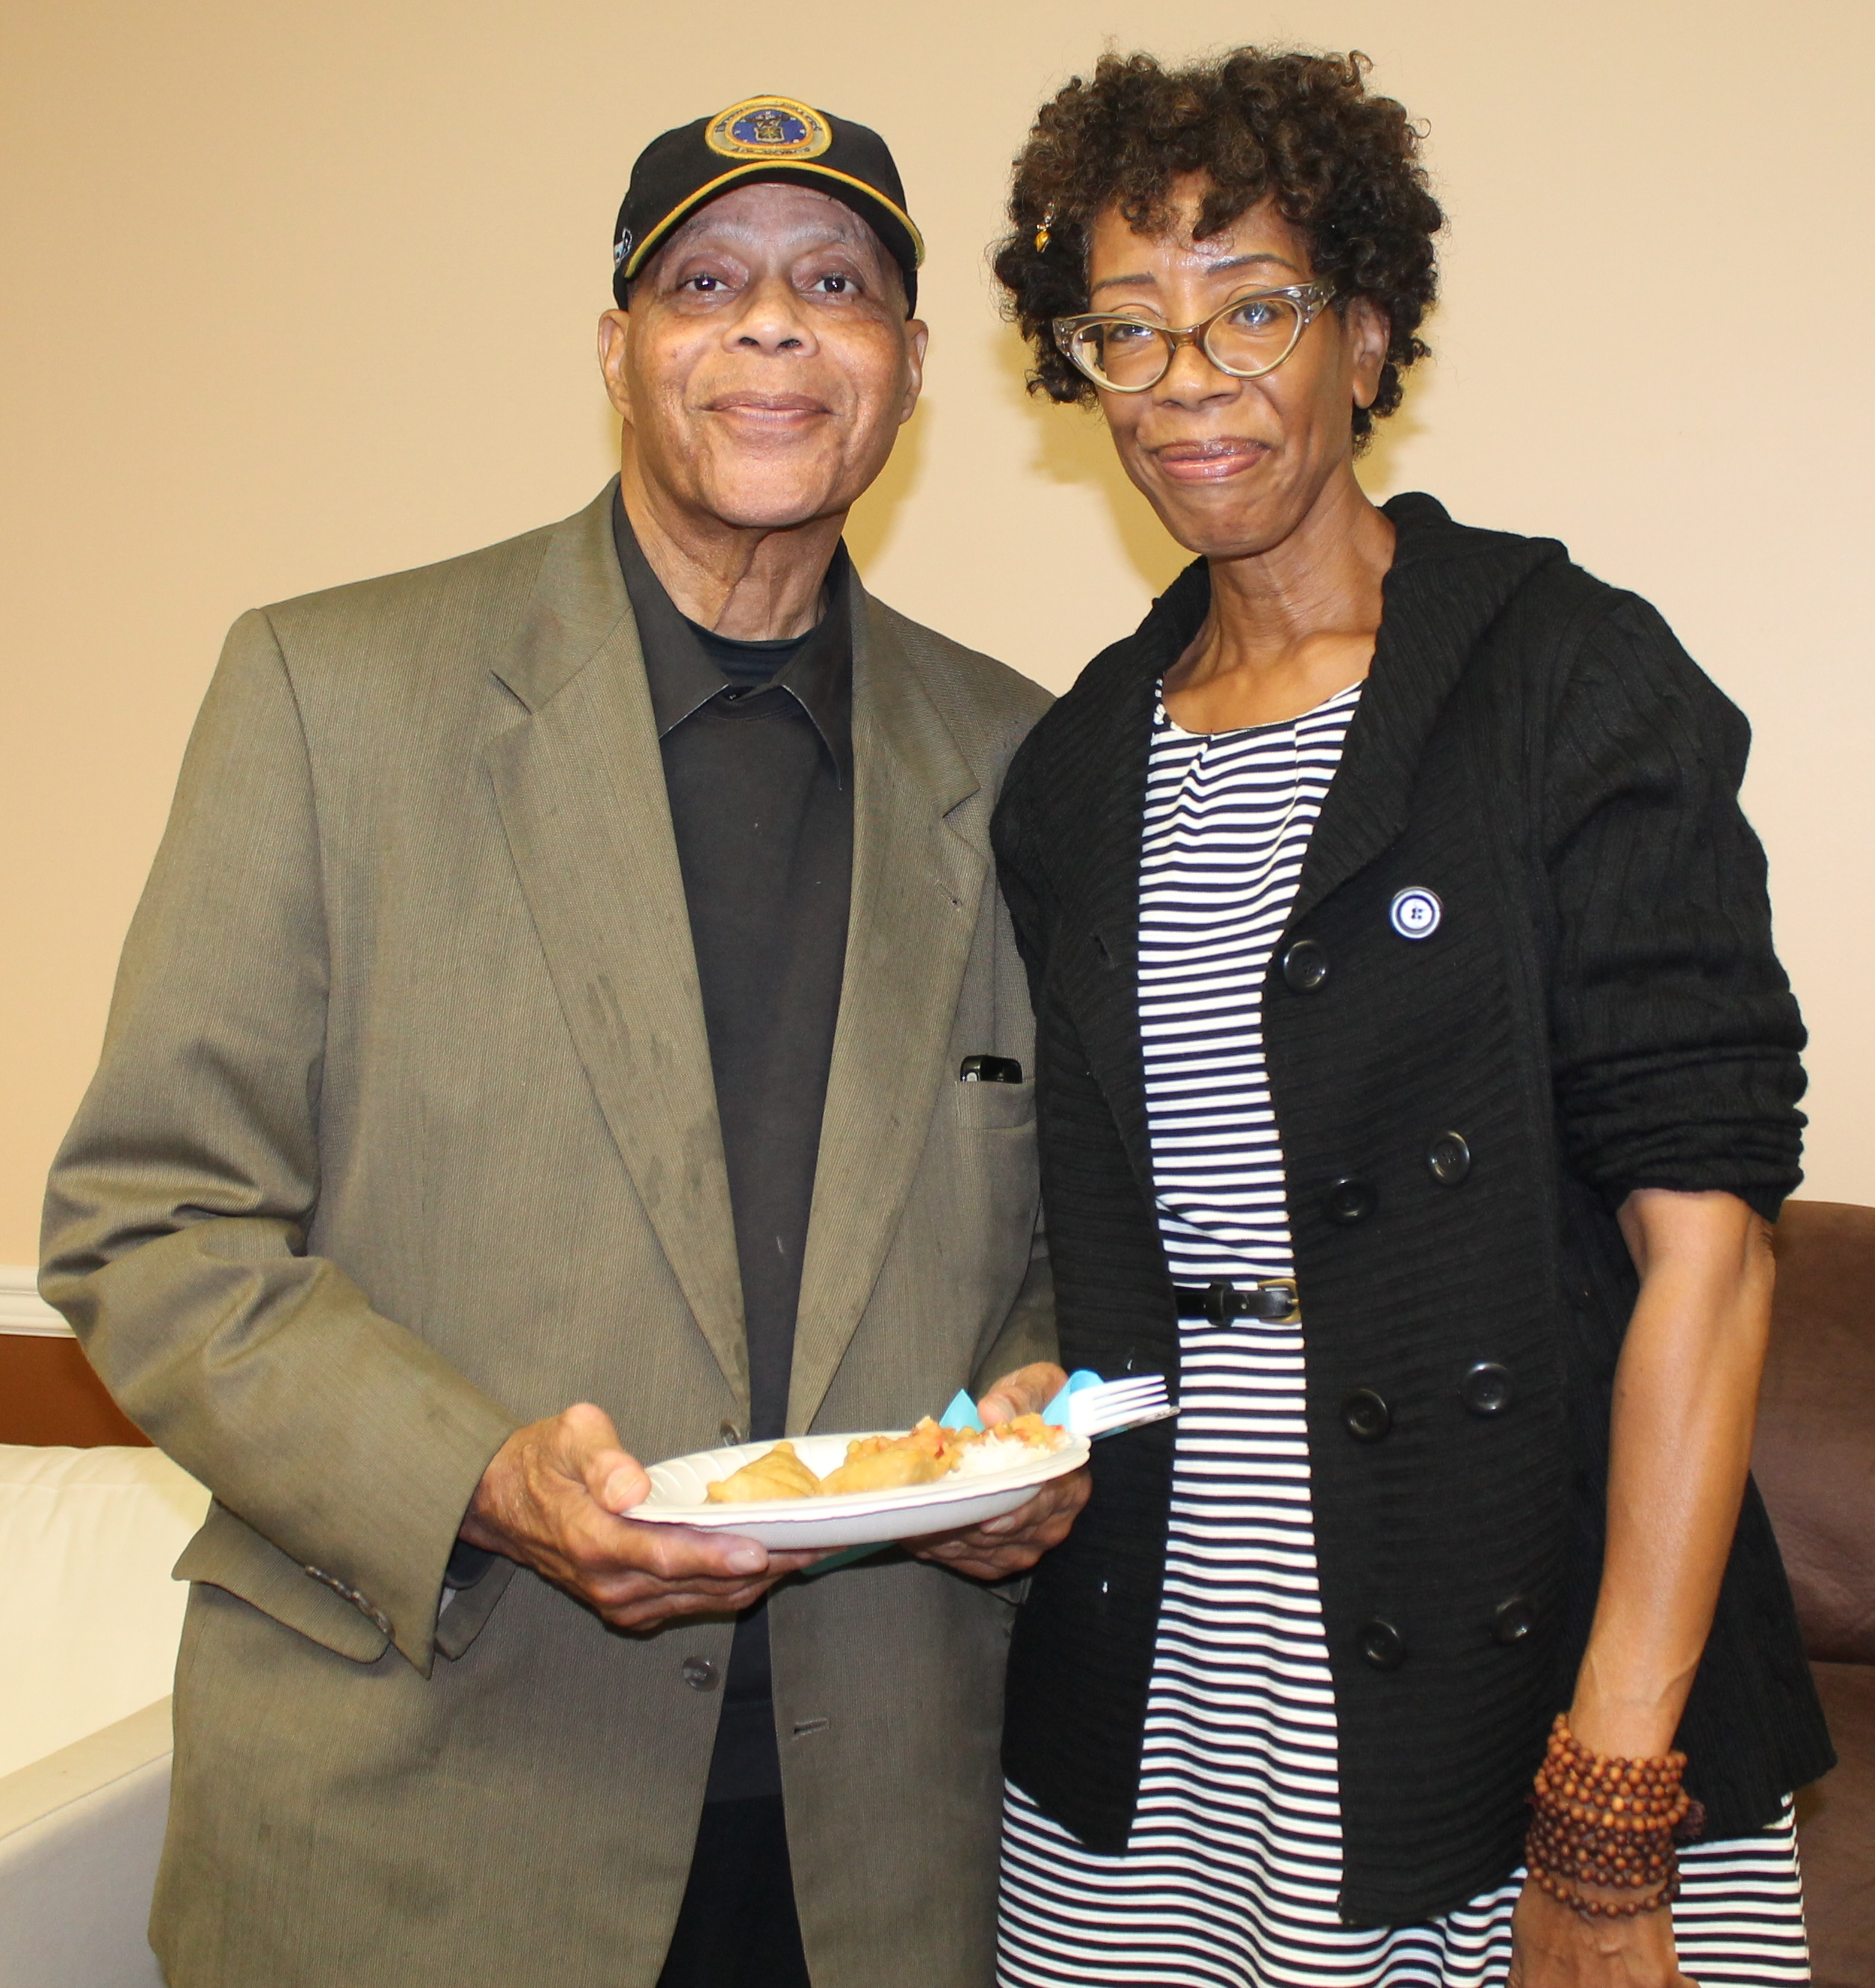 john cartright and beverly mickins at sgub benefit 2014